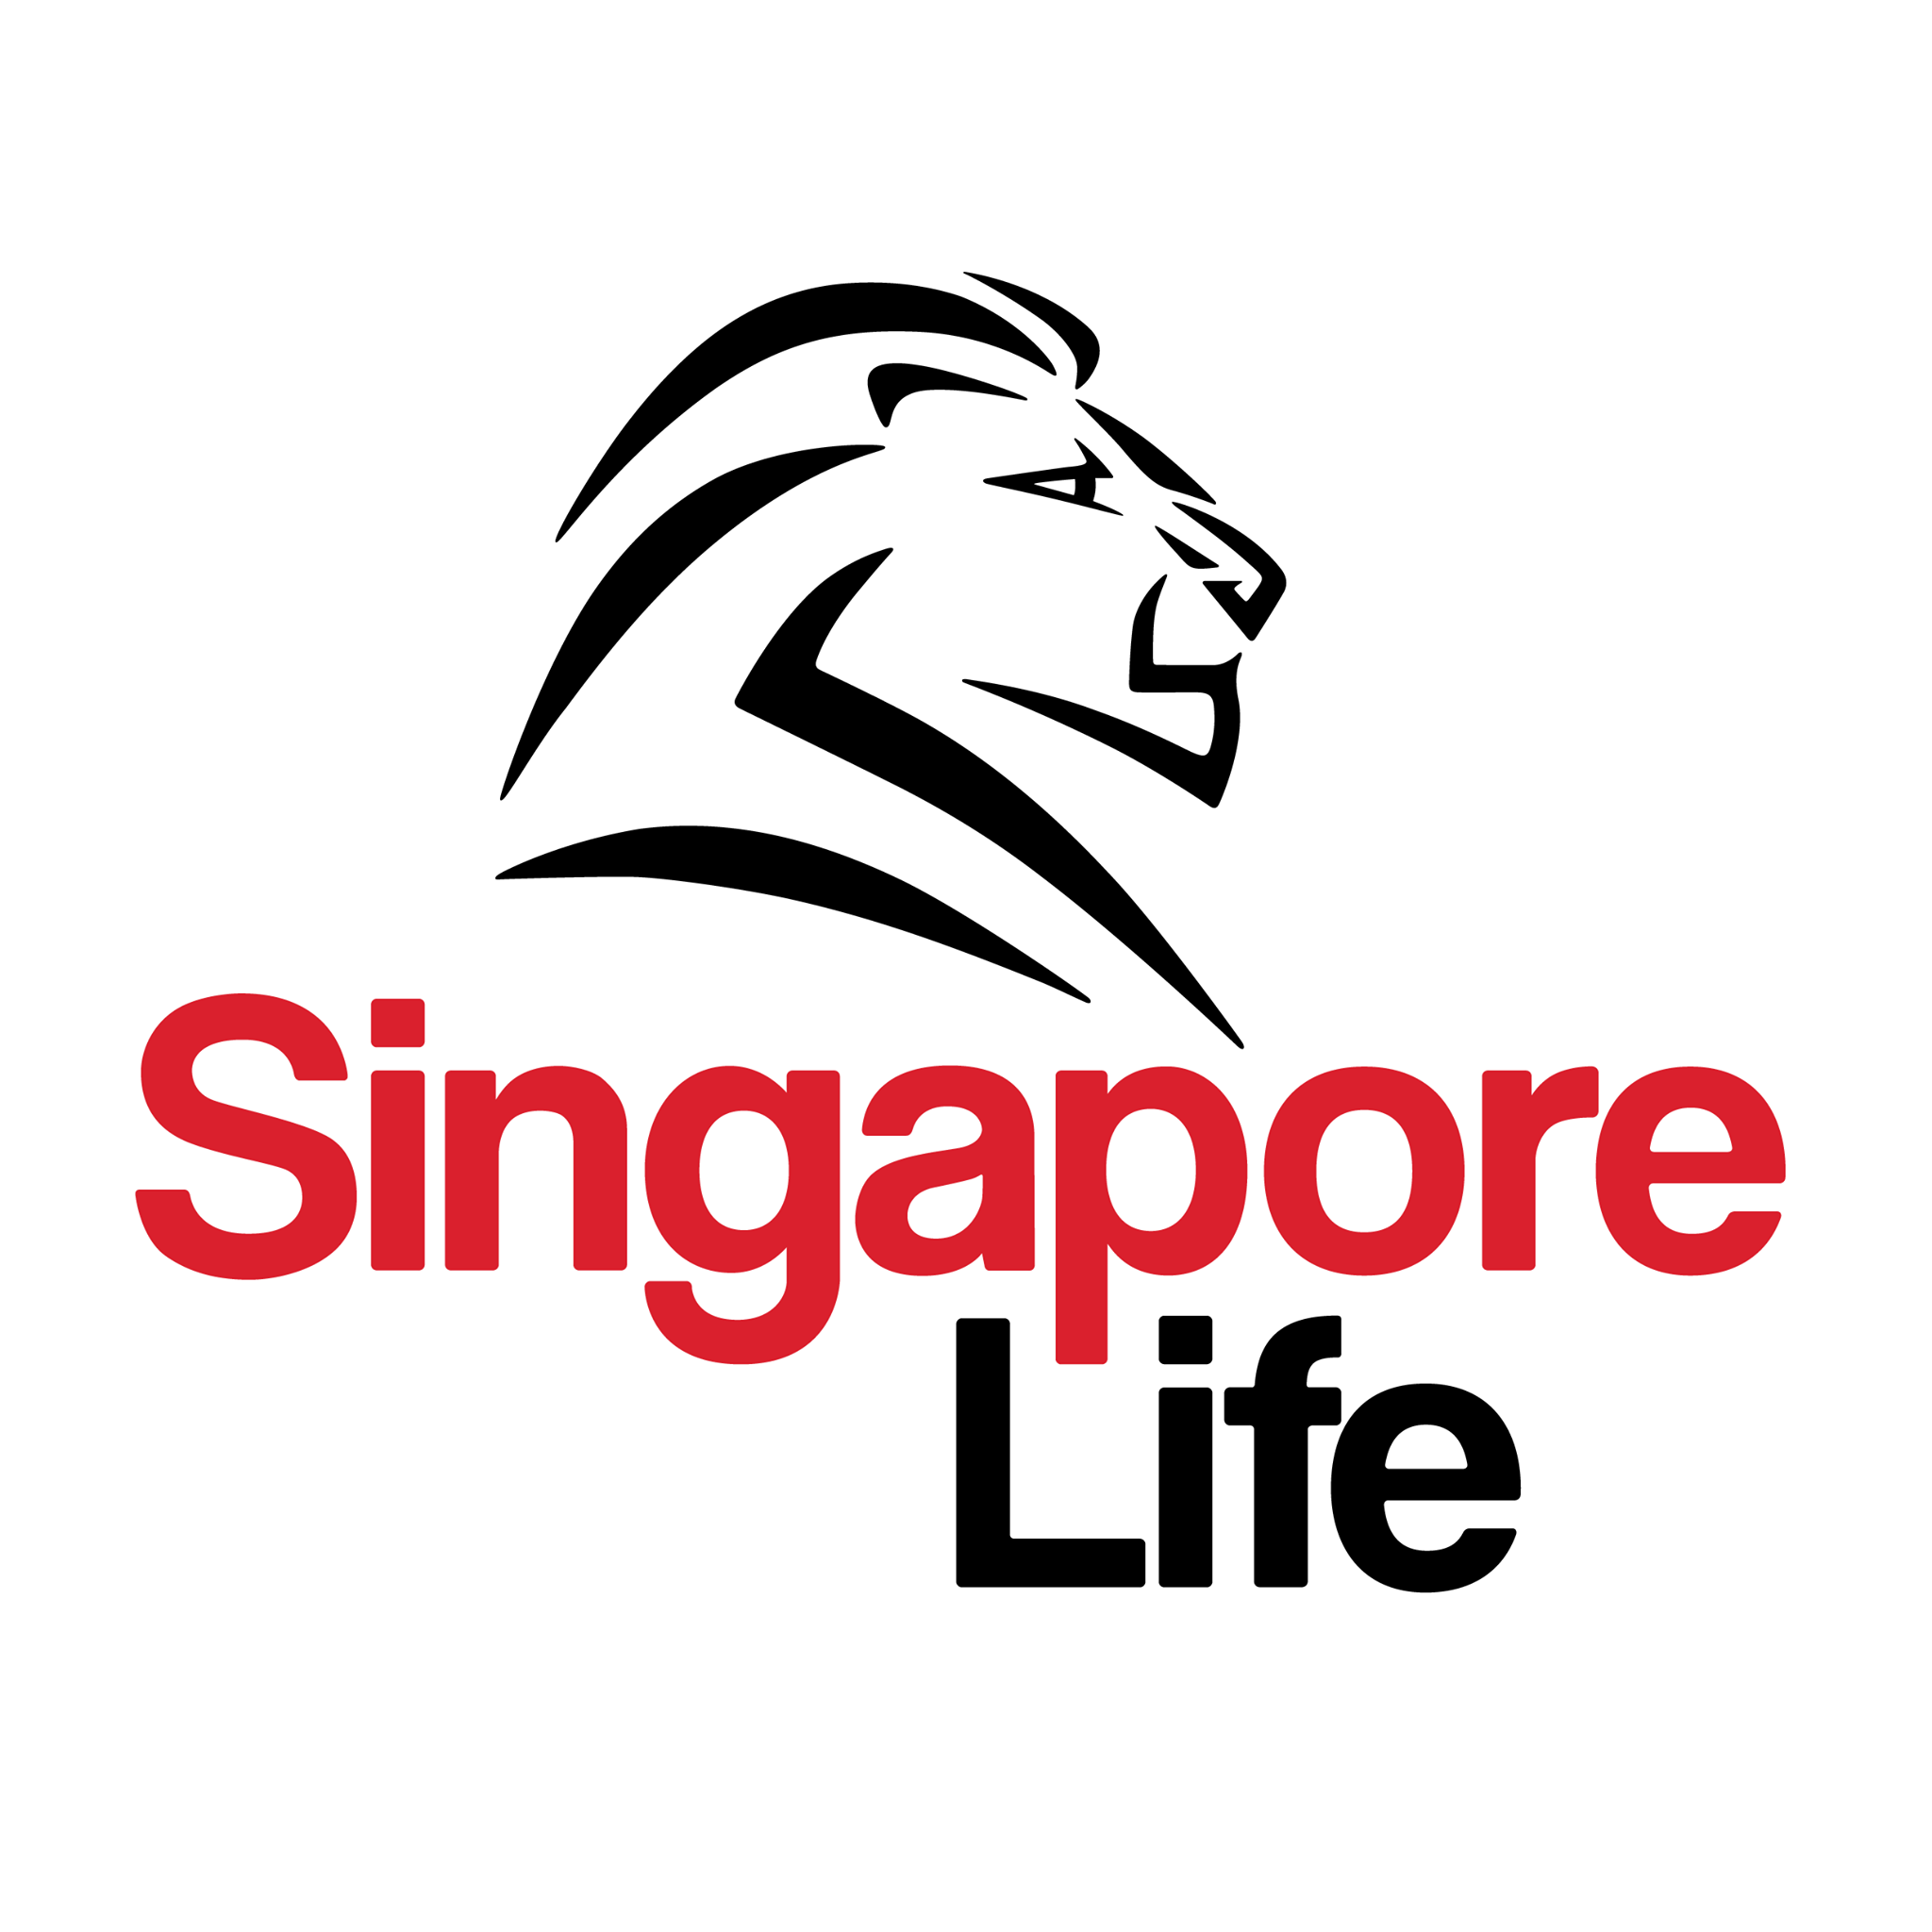 Singapore Life Marks 100 Days With S$250M Life Insurance